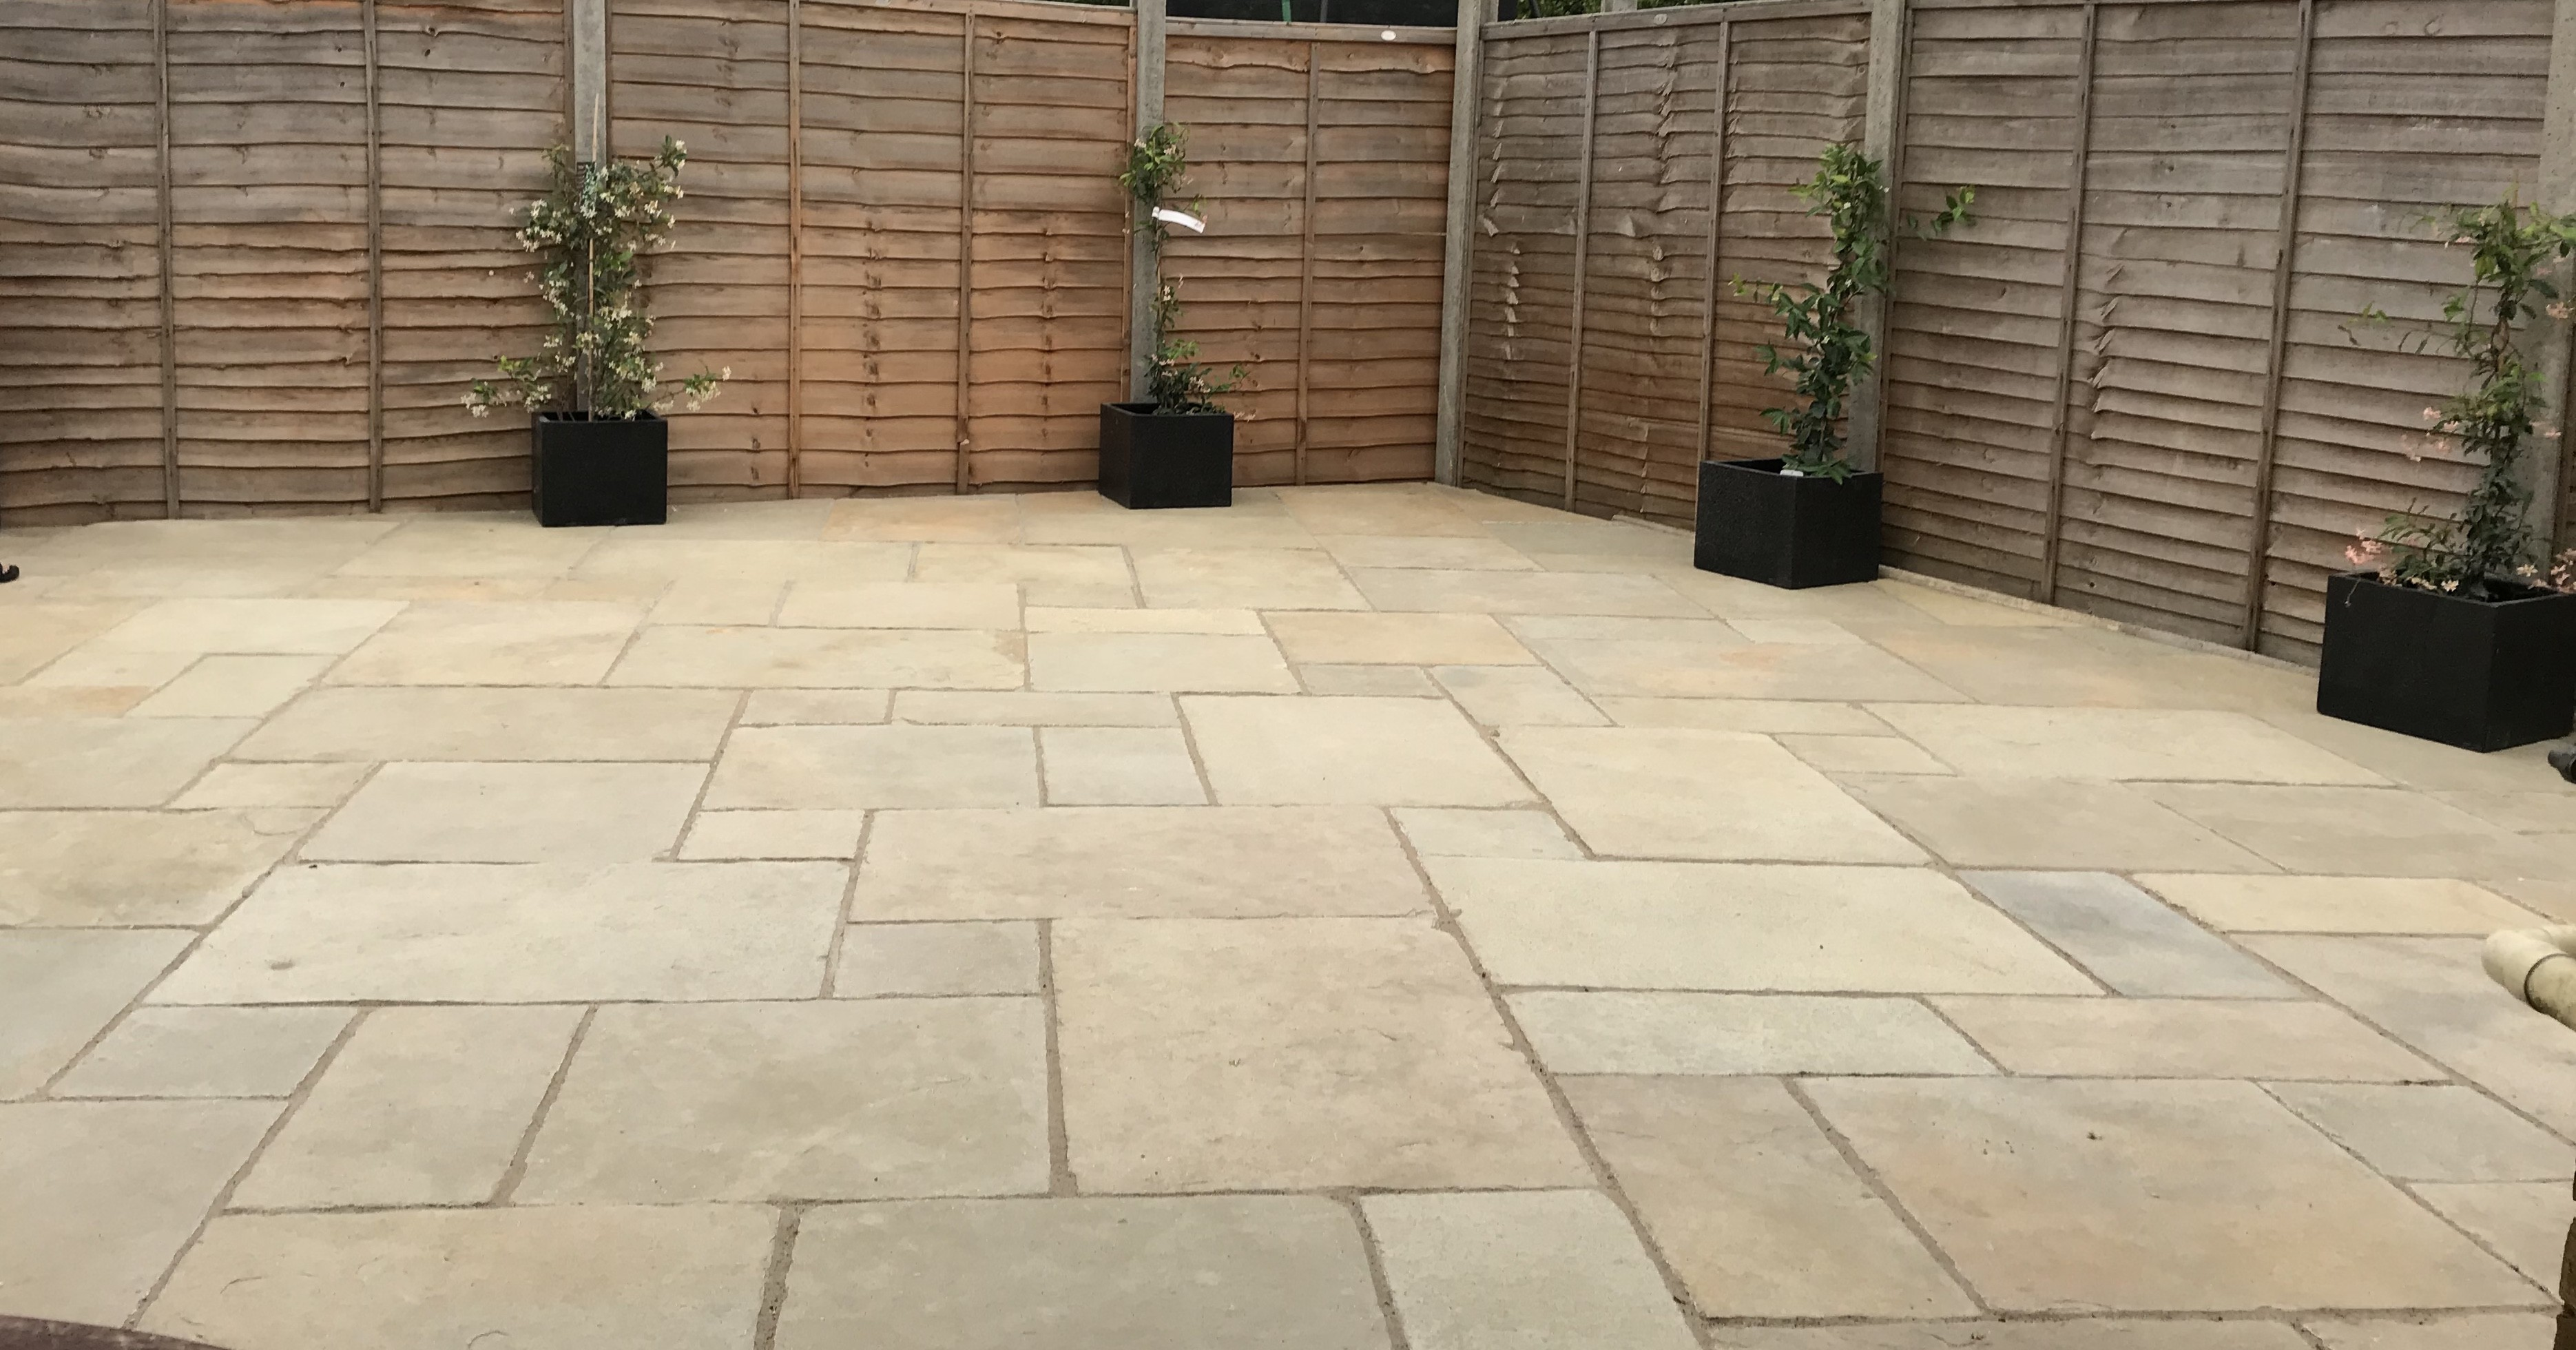 Tandur Yellow Indian Limestone Natural 22mm Calibrated Patio Paving Slabs Pack 15.5m2